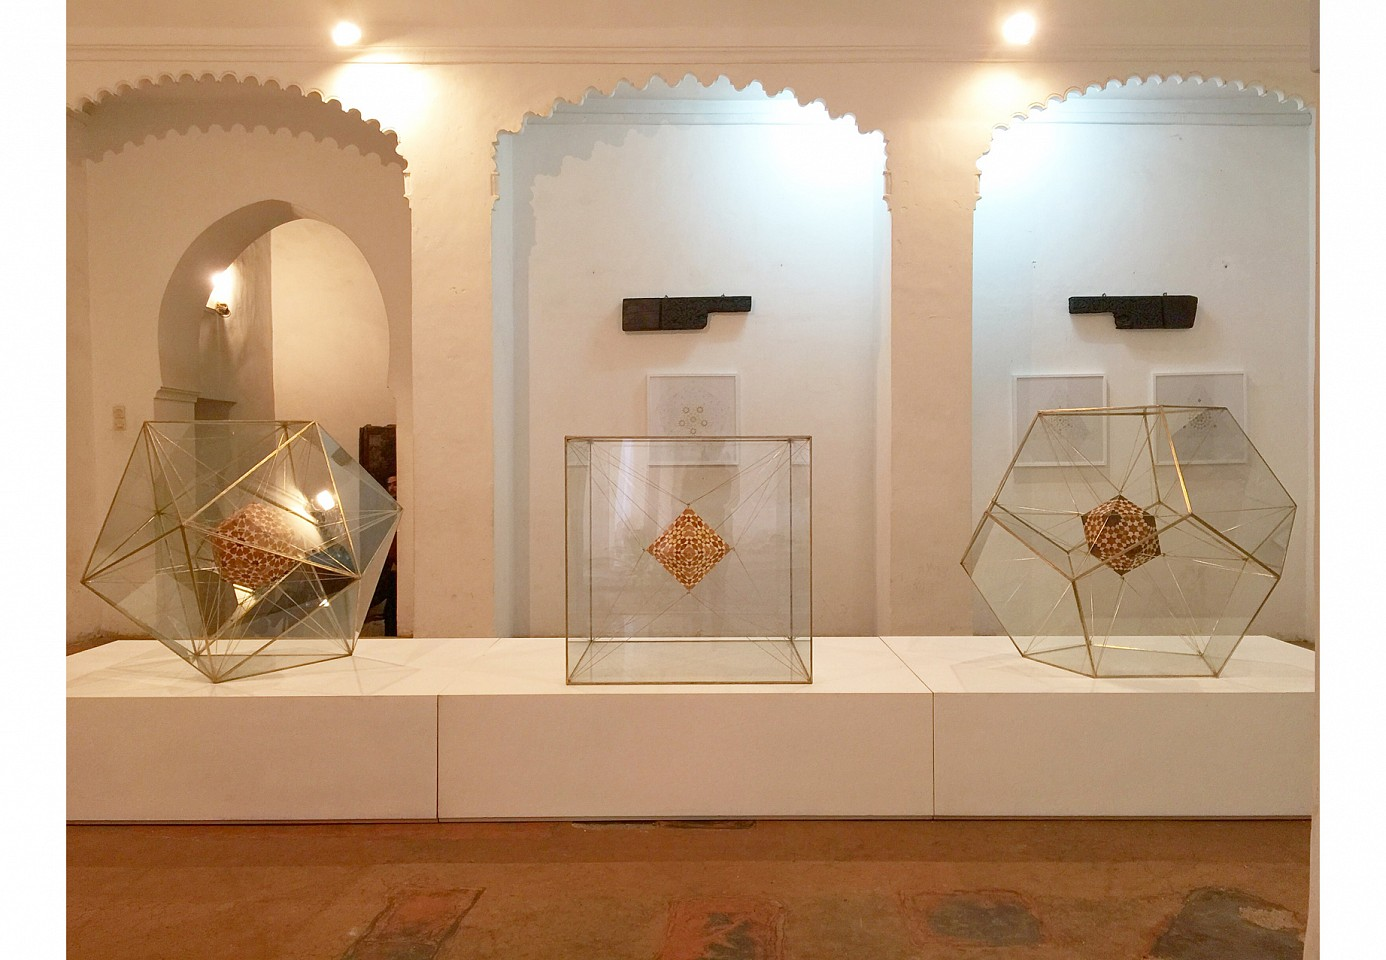 """<p><span class=""""viewer-caption-artist"""">Dana Awartani</span></p> <p><span class=""""viewer-caption-title""""><i>From left to right: Dodecahedron Within an Icosahedron, Octahedron Within a Cube & Icosahedron within a Dodecahedron from The Platonic Solid Duals Series</i></span>, <span class=""""viewer-caption-year"""">2016</span></p> <p><span class=""""viewer-caption-media"""">Shell gold and ink on paper</span></p> <p><span class=""""viewer-caption-inventory"""">DAN0112</span></p> <p><span class=""""viewer-caption-aux""""></span></p>"""